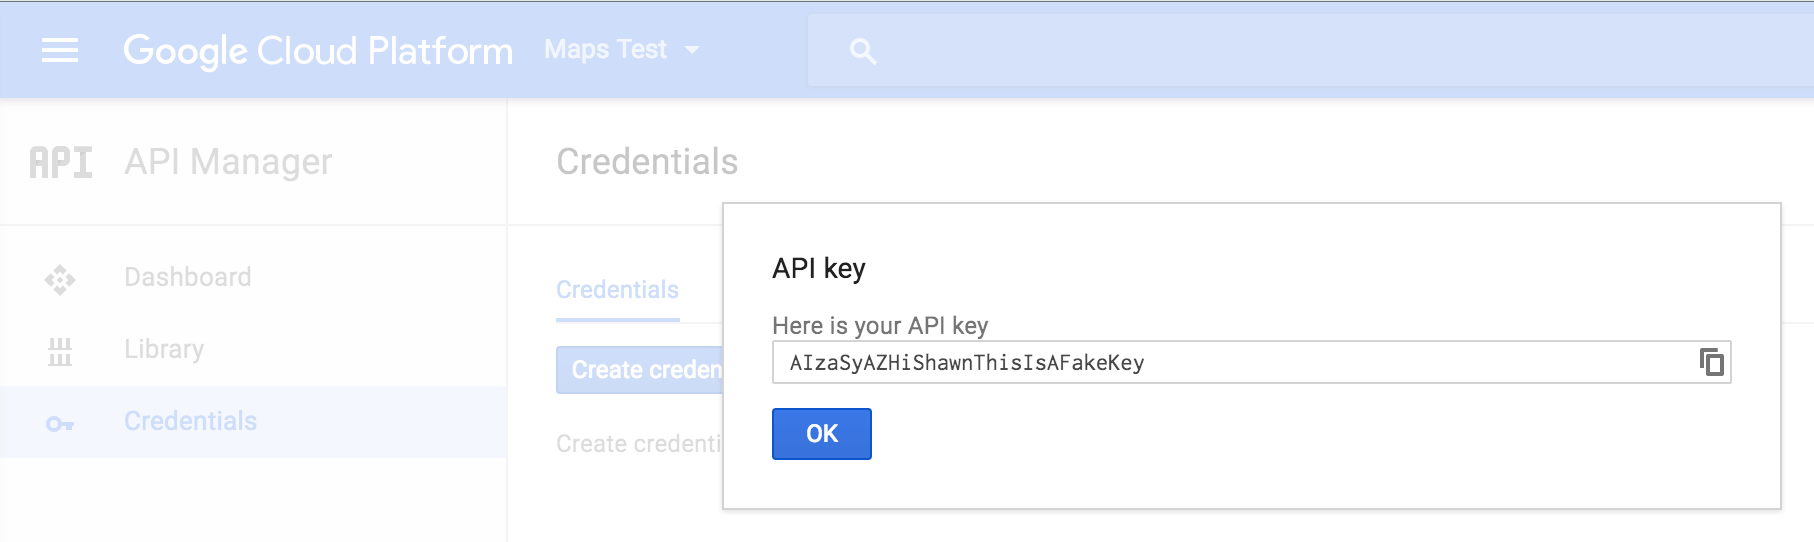 google map api key